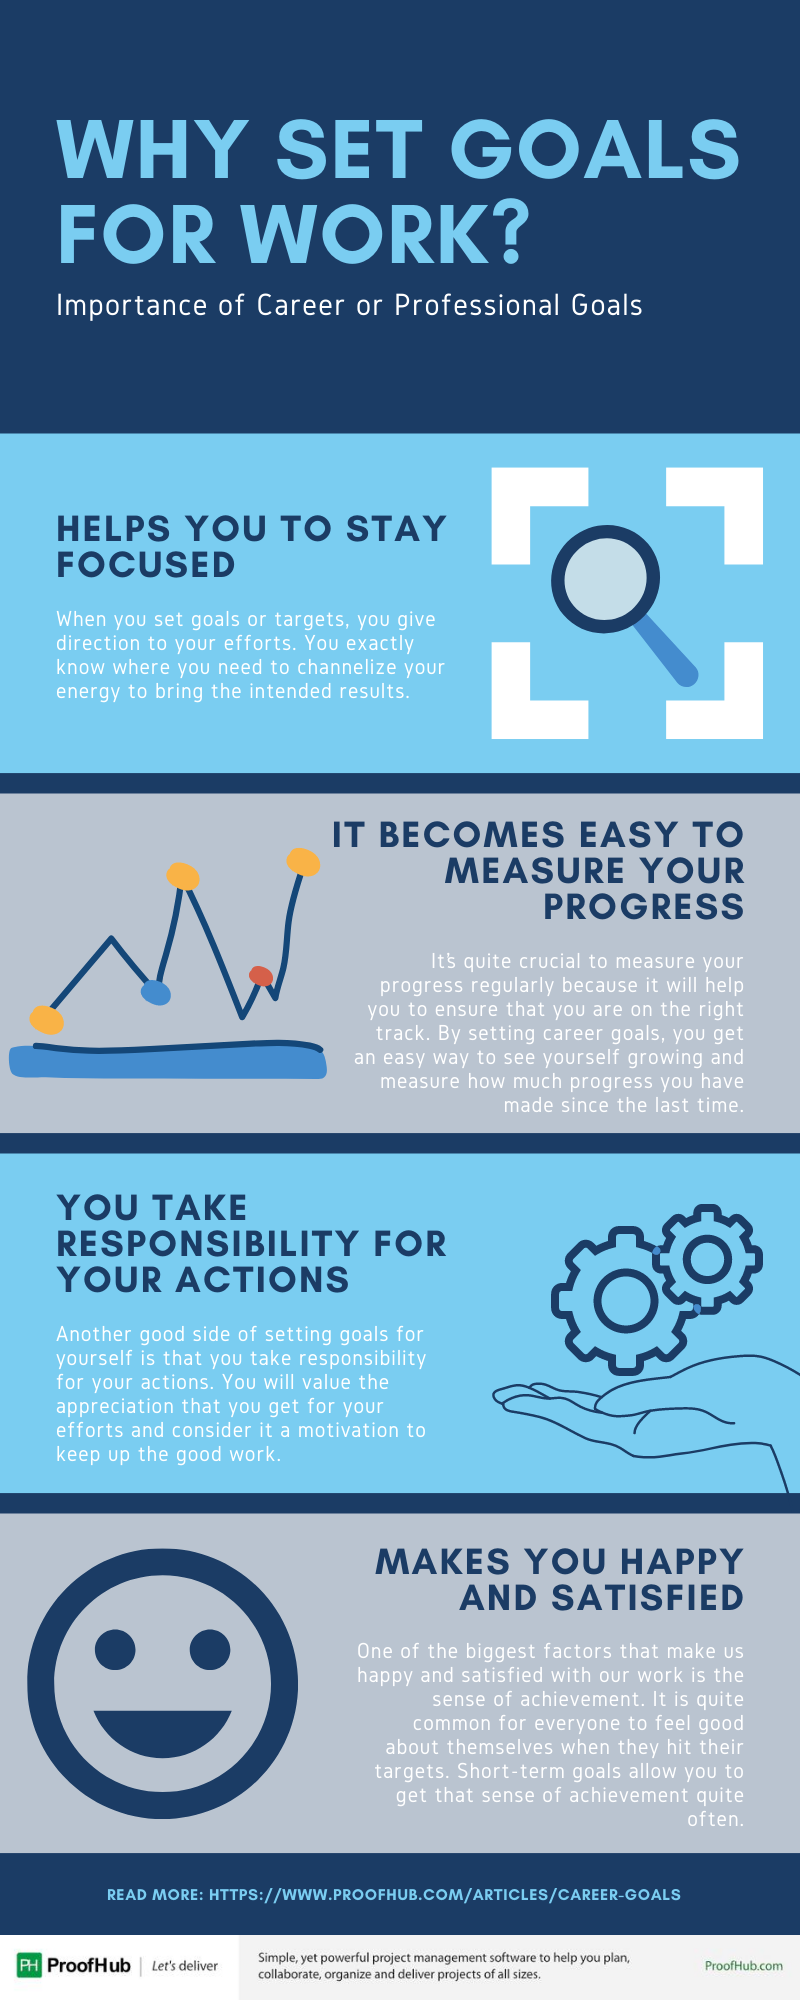 Why Set Goals for Work